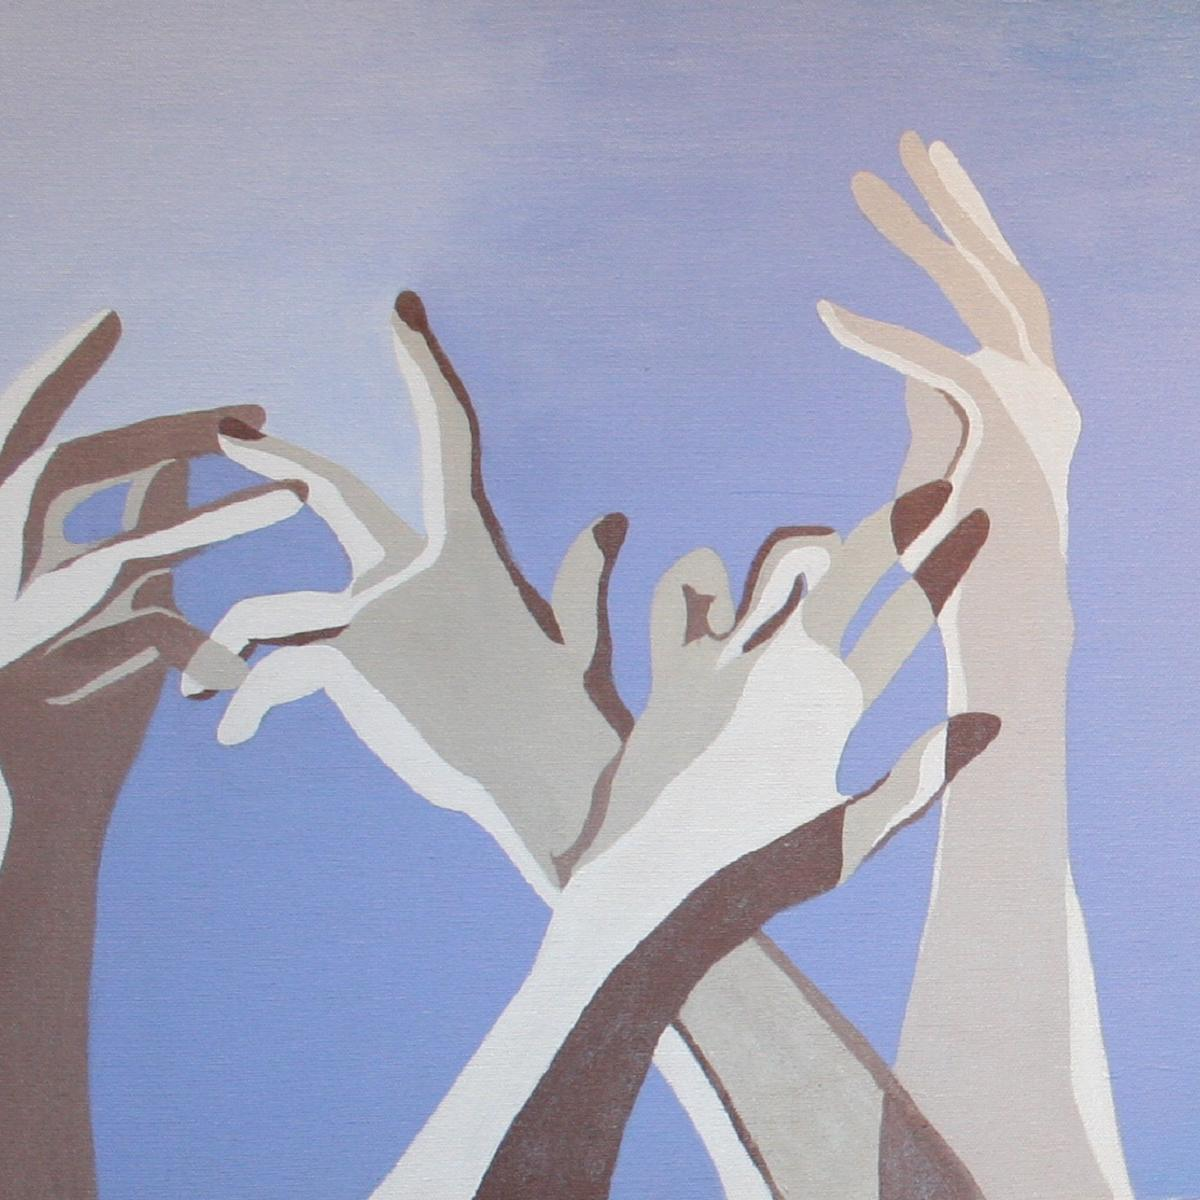 Graphic of several hands reaching upward